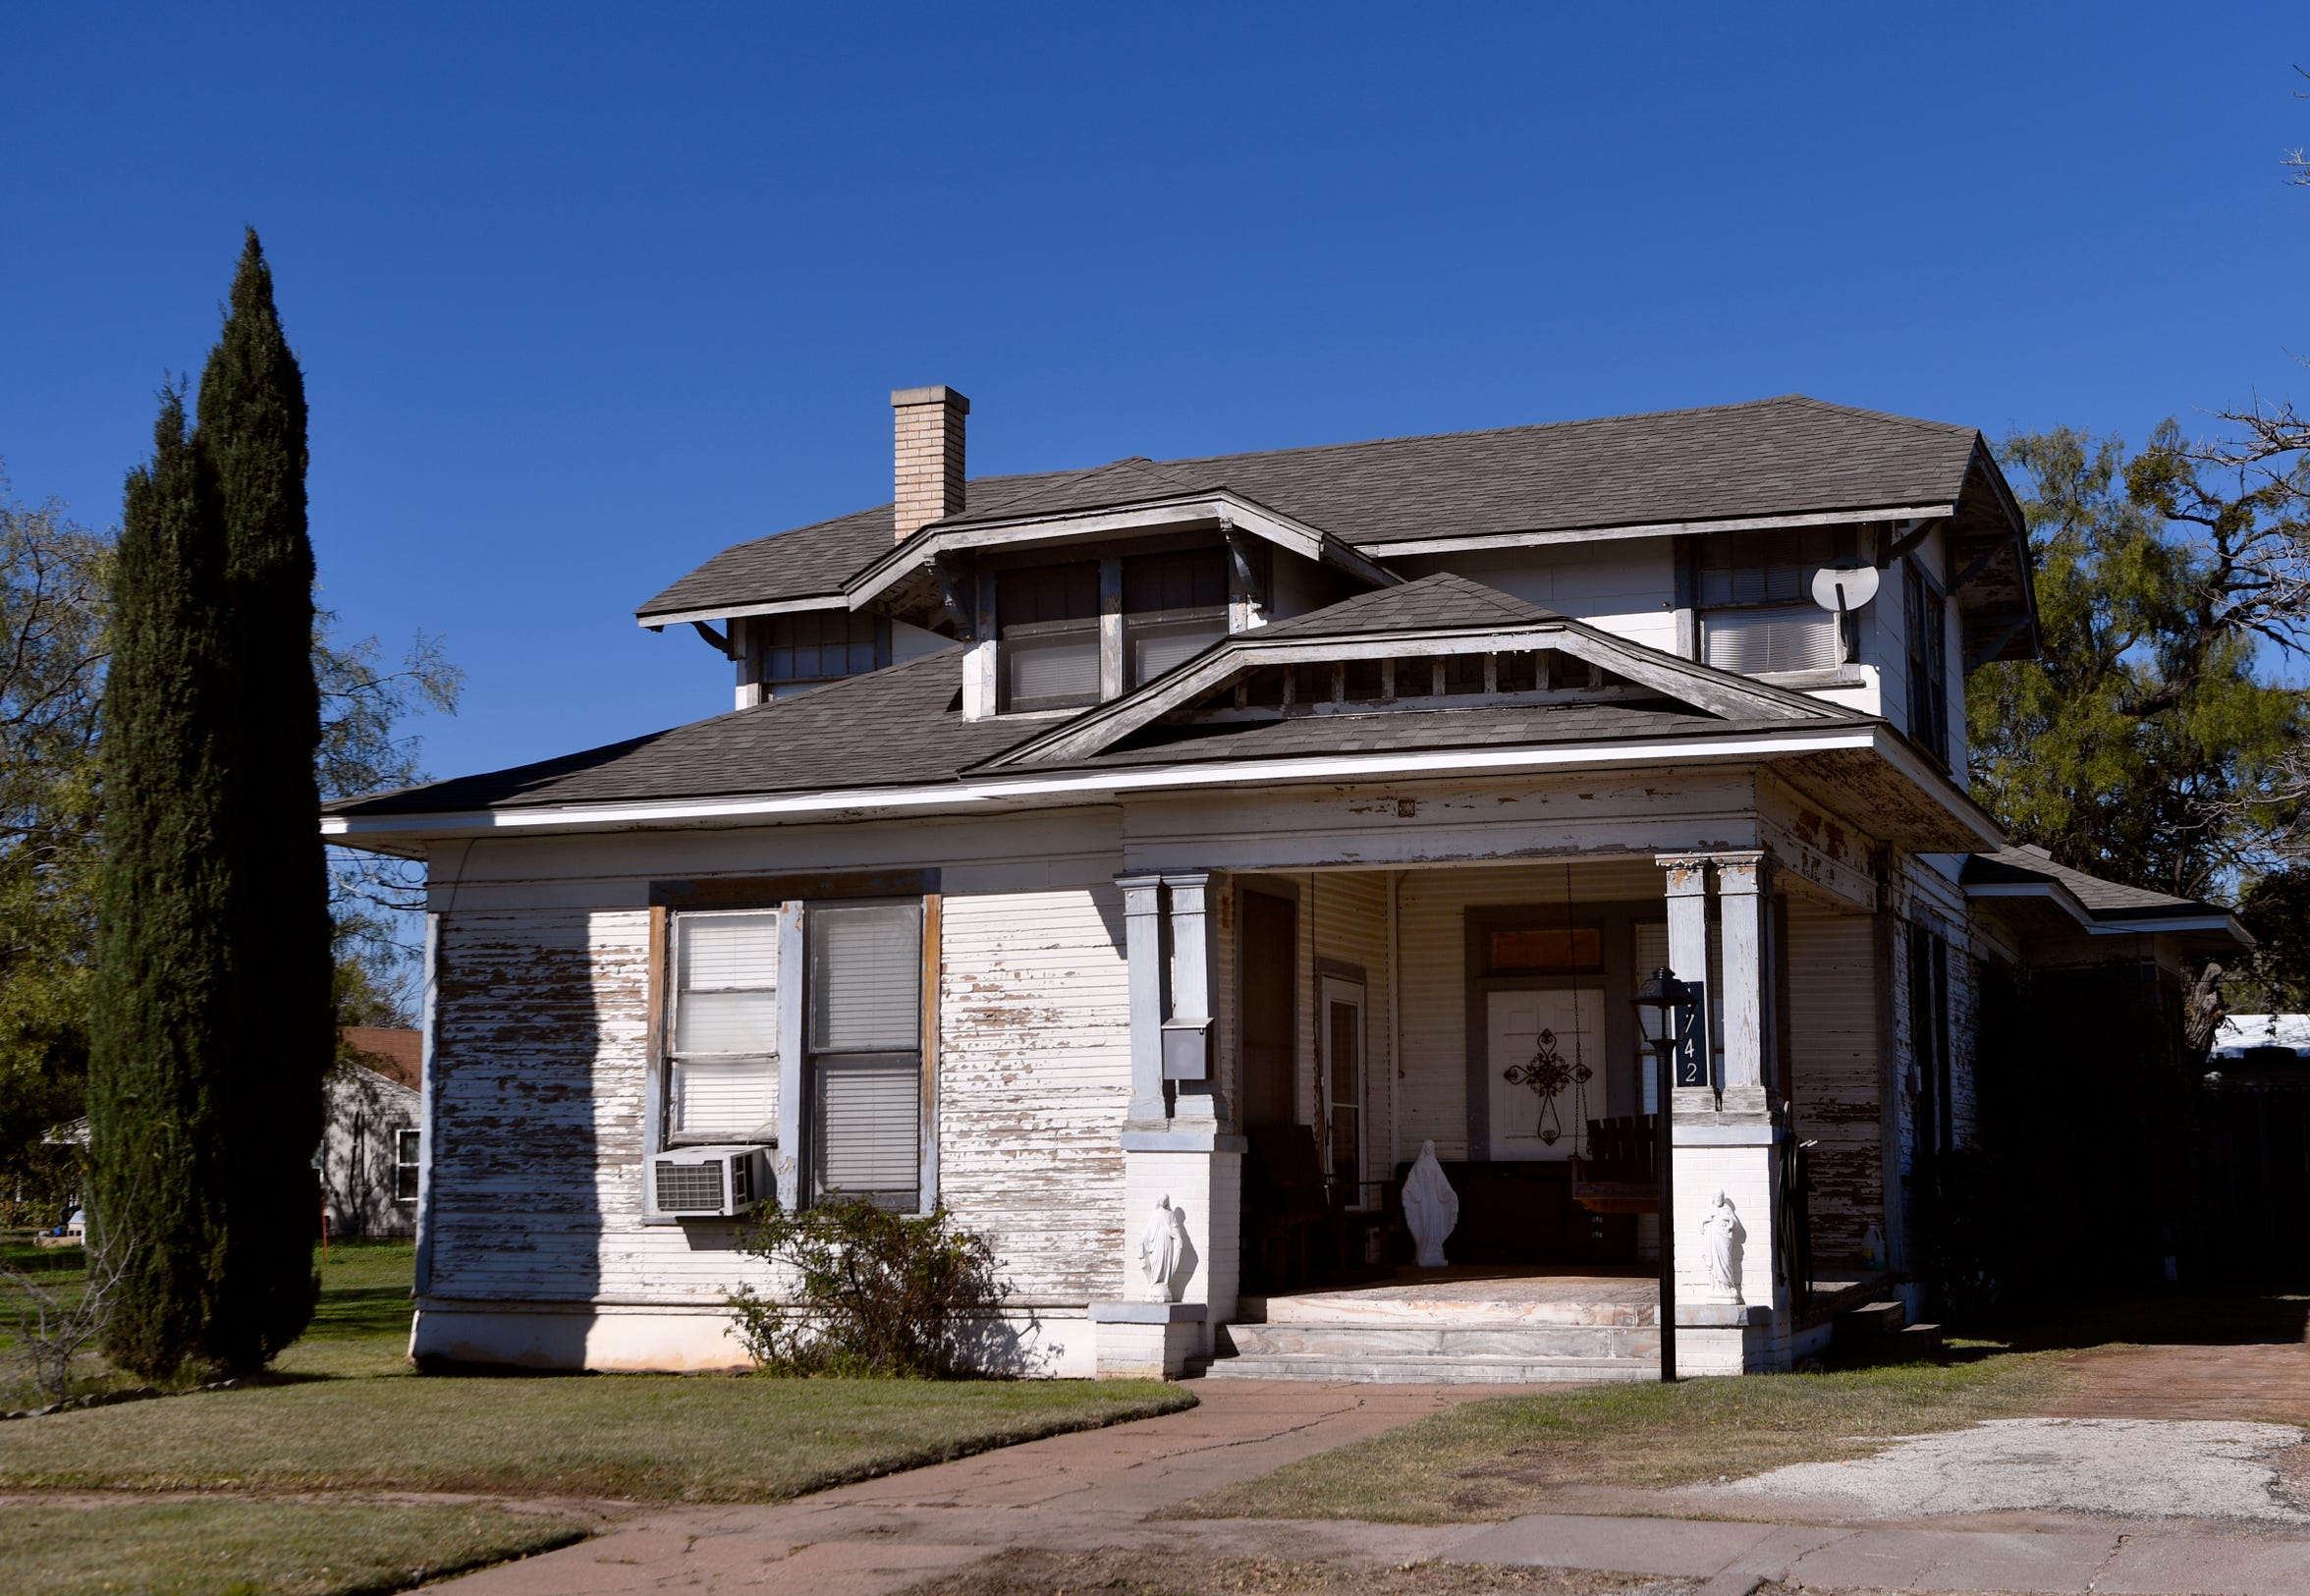 The home at 1742 N. Second Street, designed by and originally lived in by Abilene architect David S. Castle.